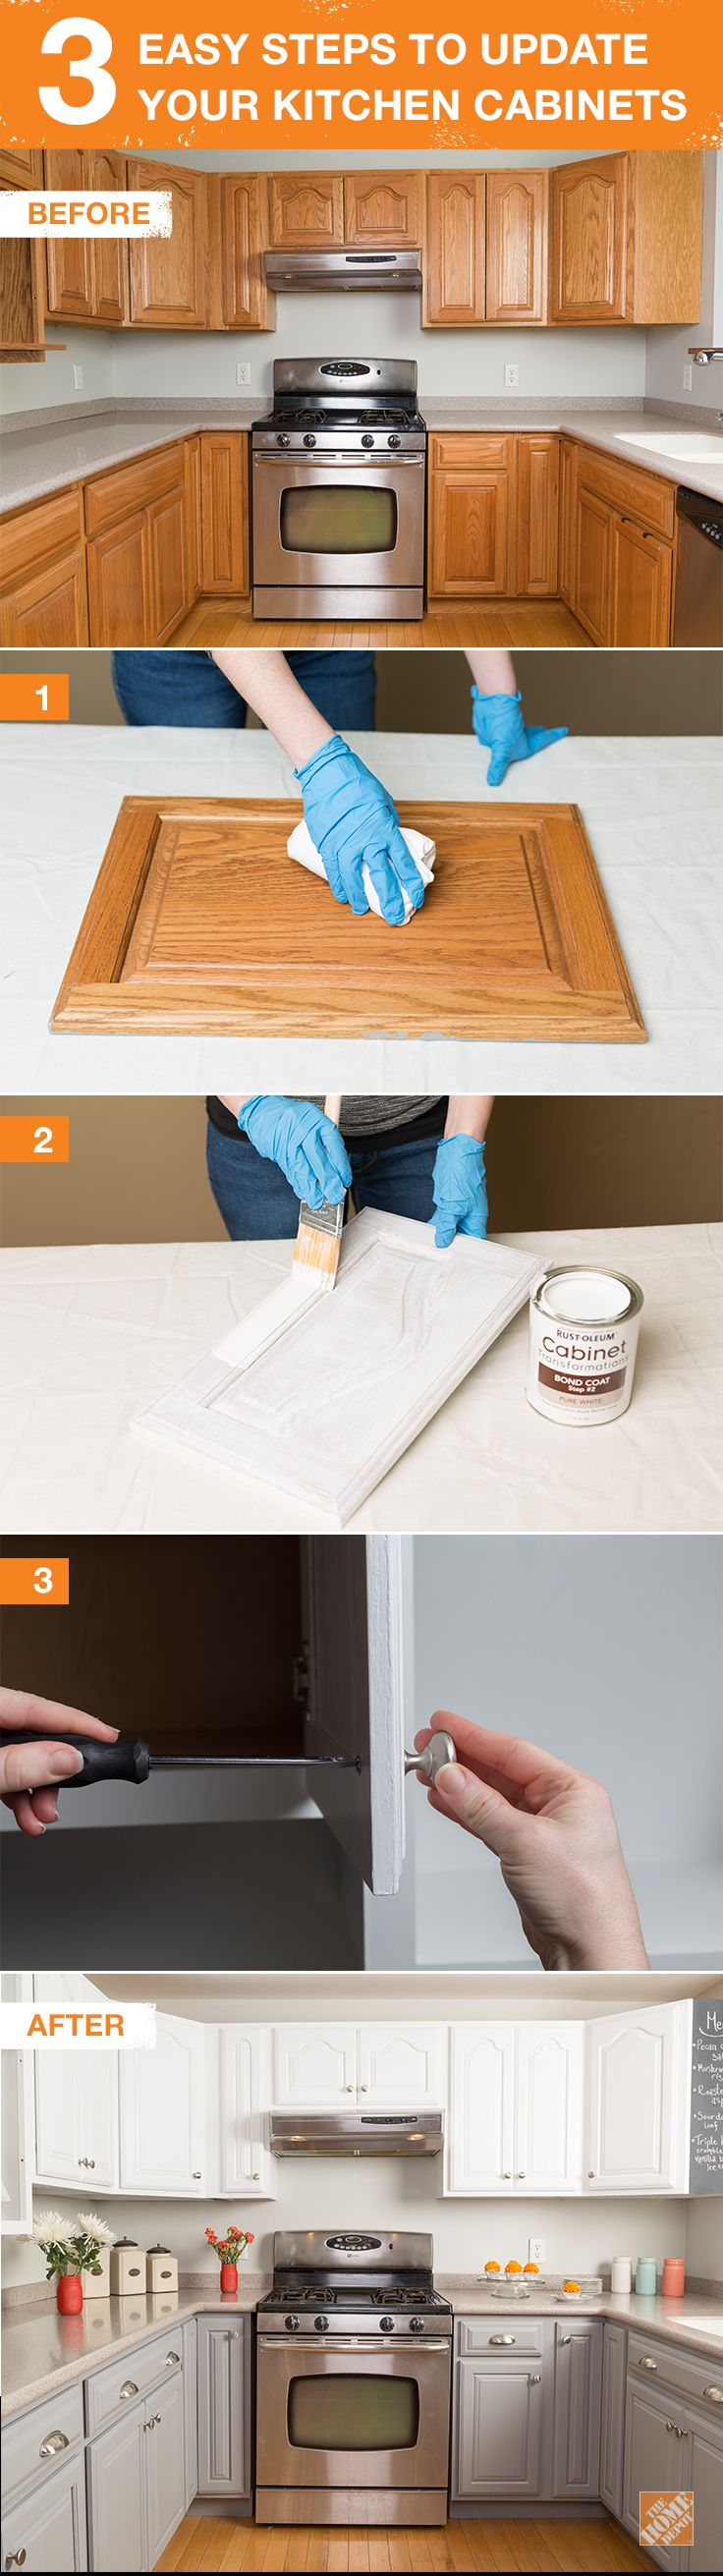 best 25 home depot ideas on pinterest diy kitchen remodel